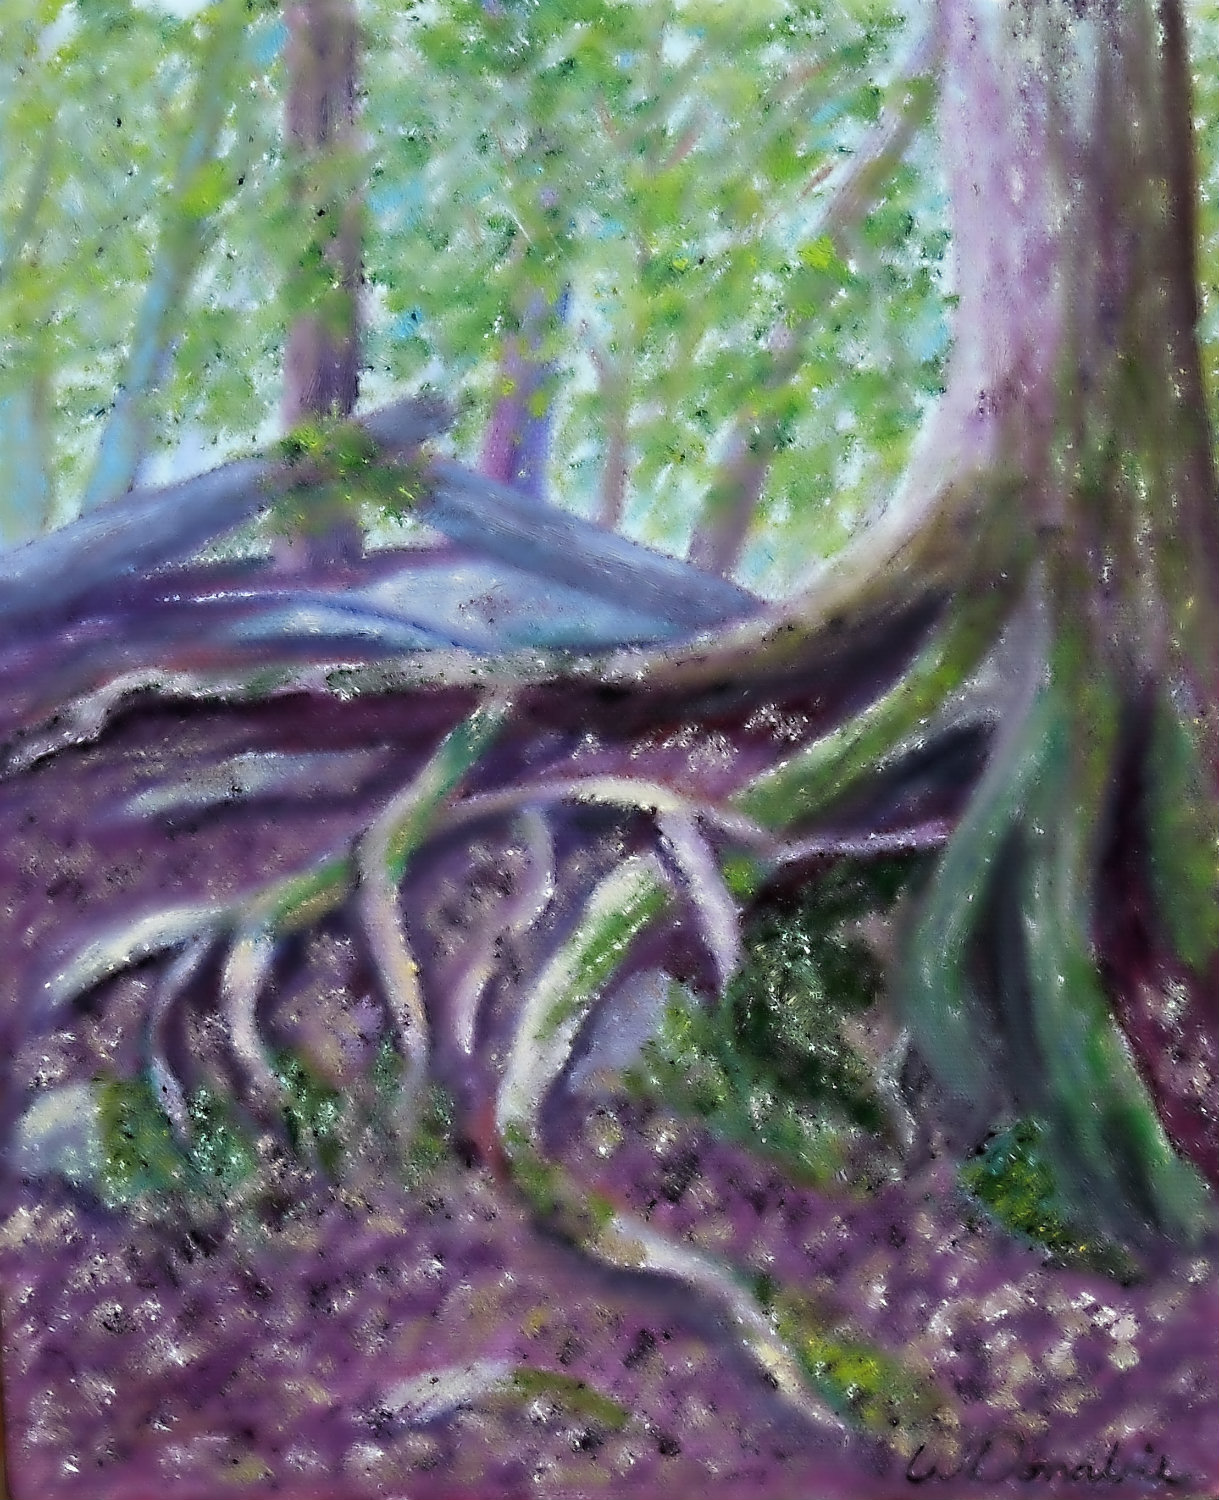 3639 - Firmly Rooted - Enchantment #3, Oil on Canvas, 10 x 8 inches, Copyright Wendie Donabie